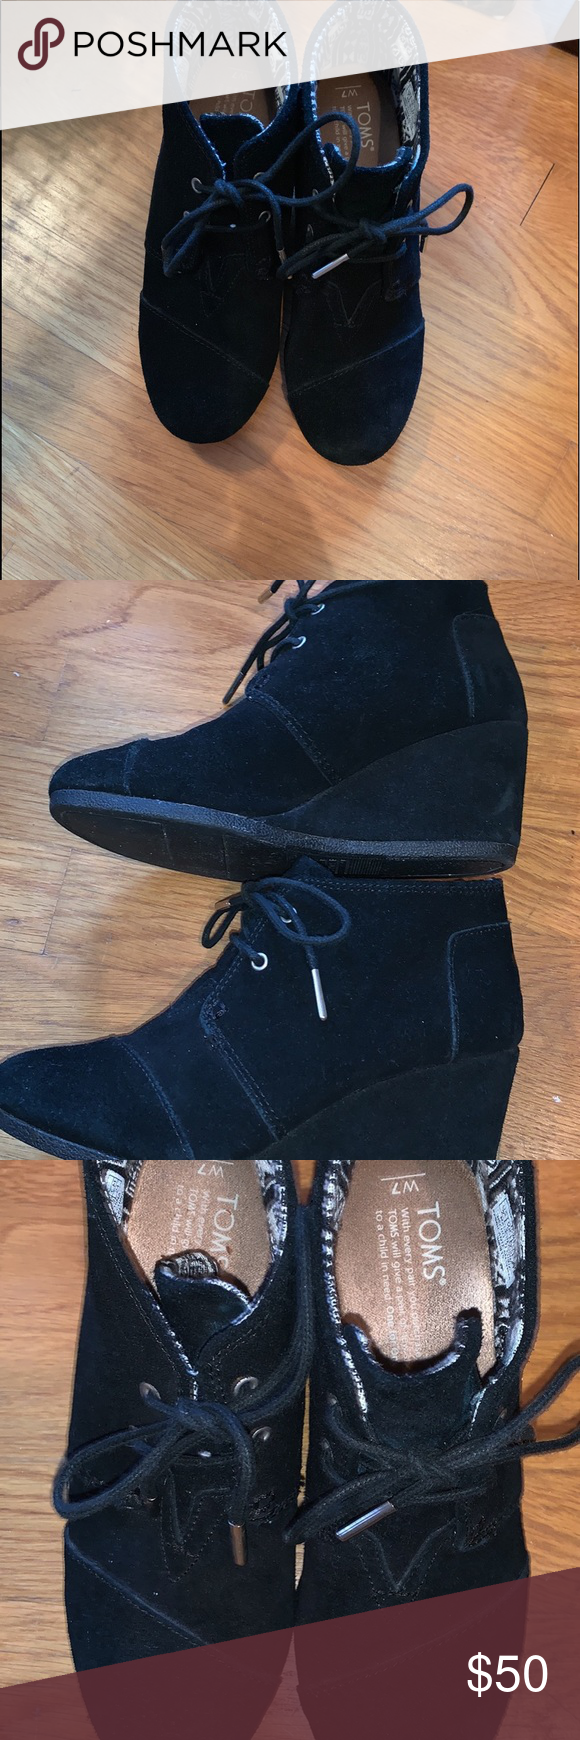 Toms Black booties Great used condition Toms booties. Hardly worn. Super cute with skinny jeans! Toms Shoes Ankle Boots & Booties #skinnyjeansandankleboots Toms Black booties Great used condition Toms booties. Hardly worn. Super cute with skinny jeans! Toms Shoes Ankle Boots & Booties #skinnyjeansandankleboots